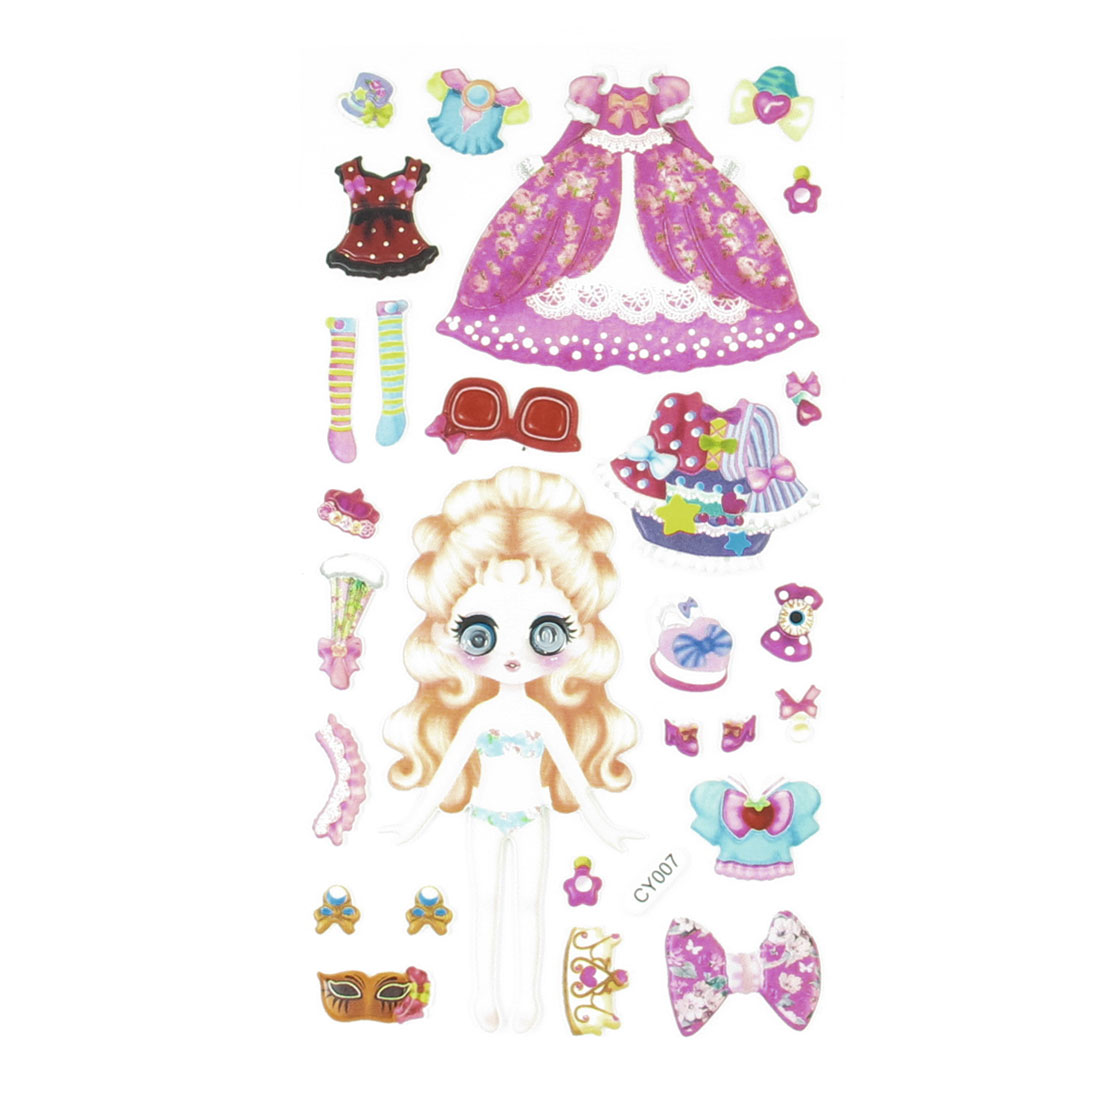 Pink Plastic Wobble Eyes Girls Bubble Skirt Pattern Princess Foam Sticker